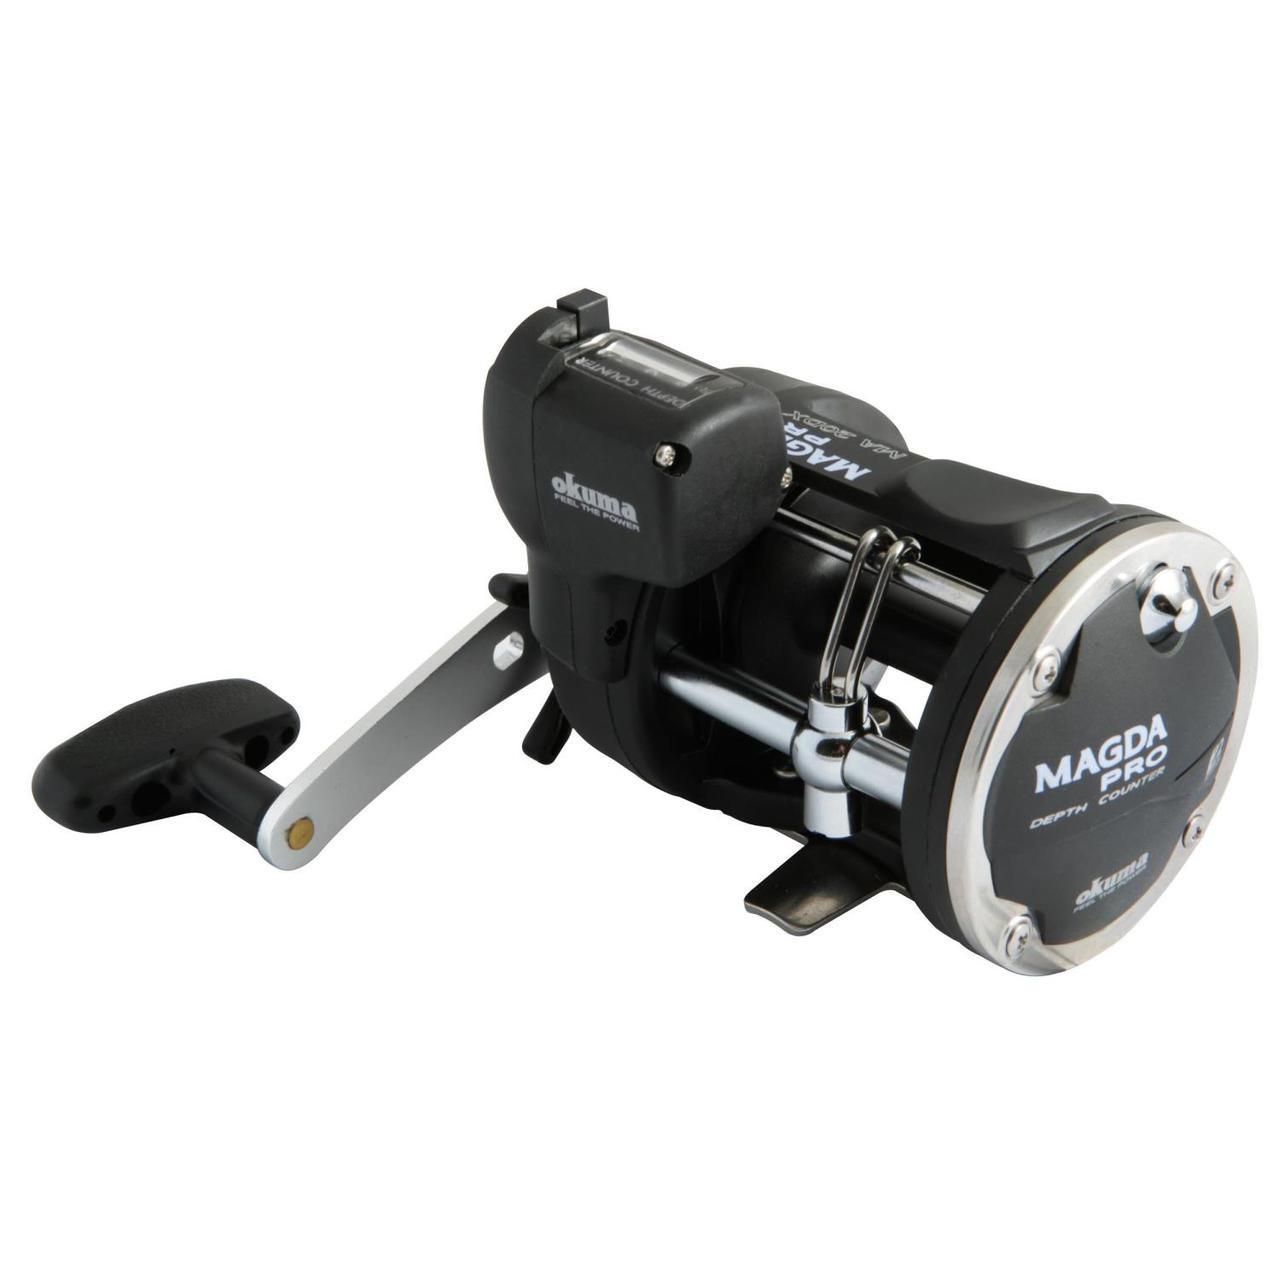 Okuma magda pro dx line counter reels for Line counter fishing reels